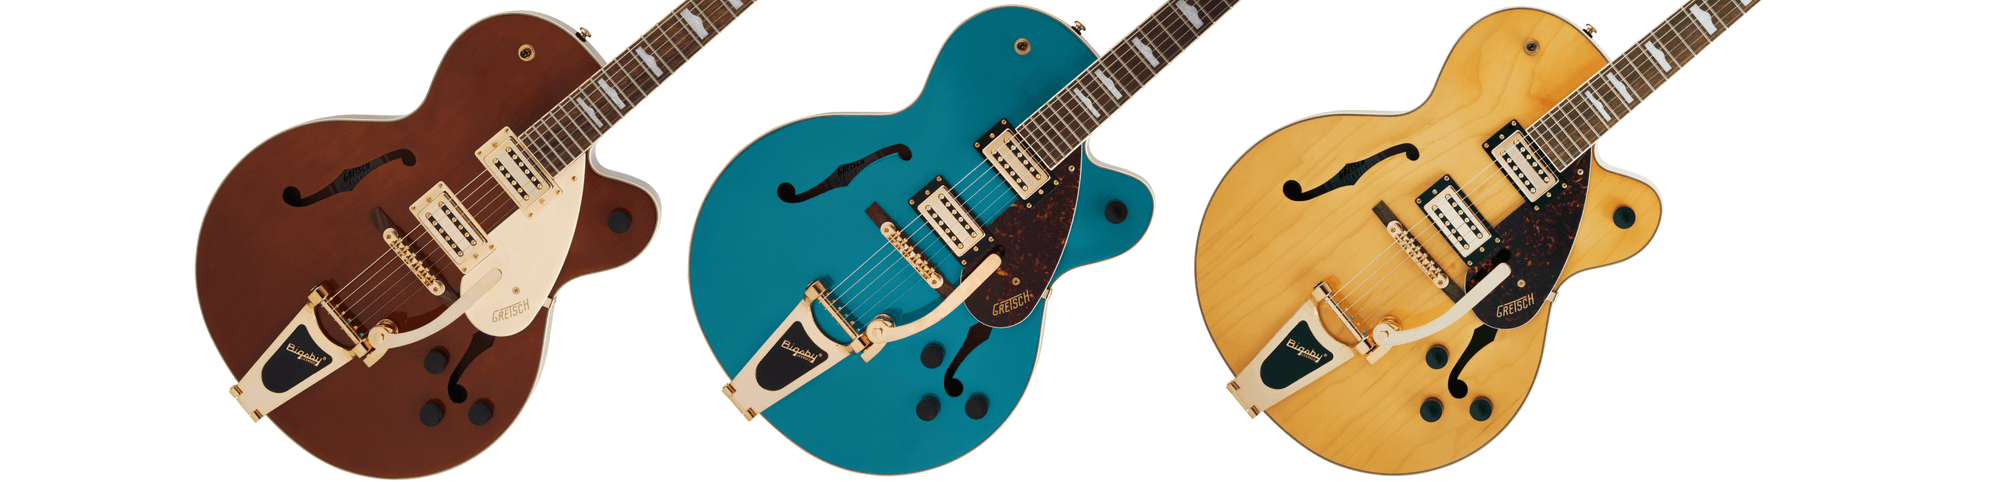 Gretsch drop exciting new Streamliner Hollow Body model, the G2410TG.